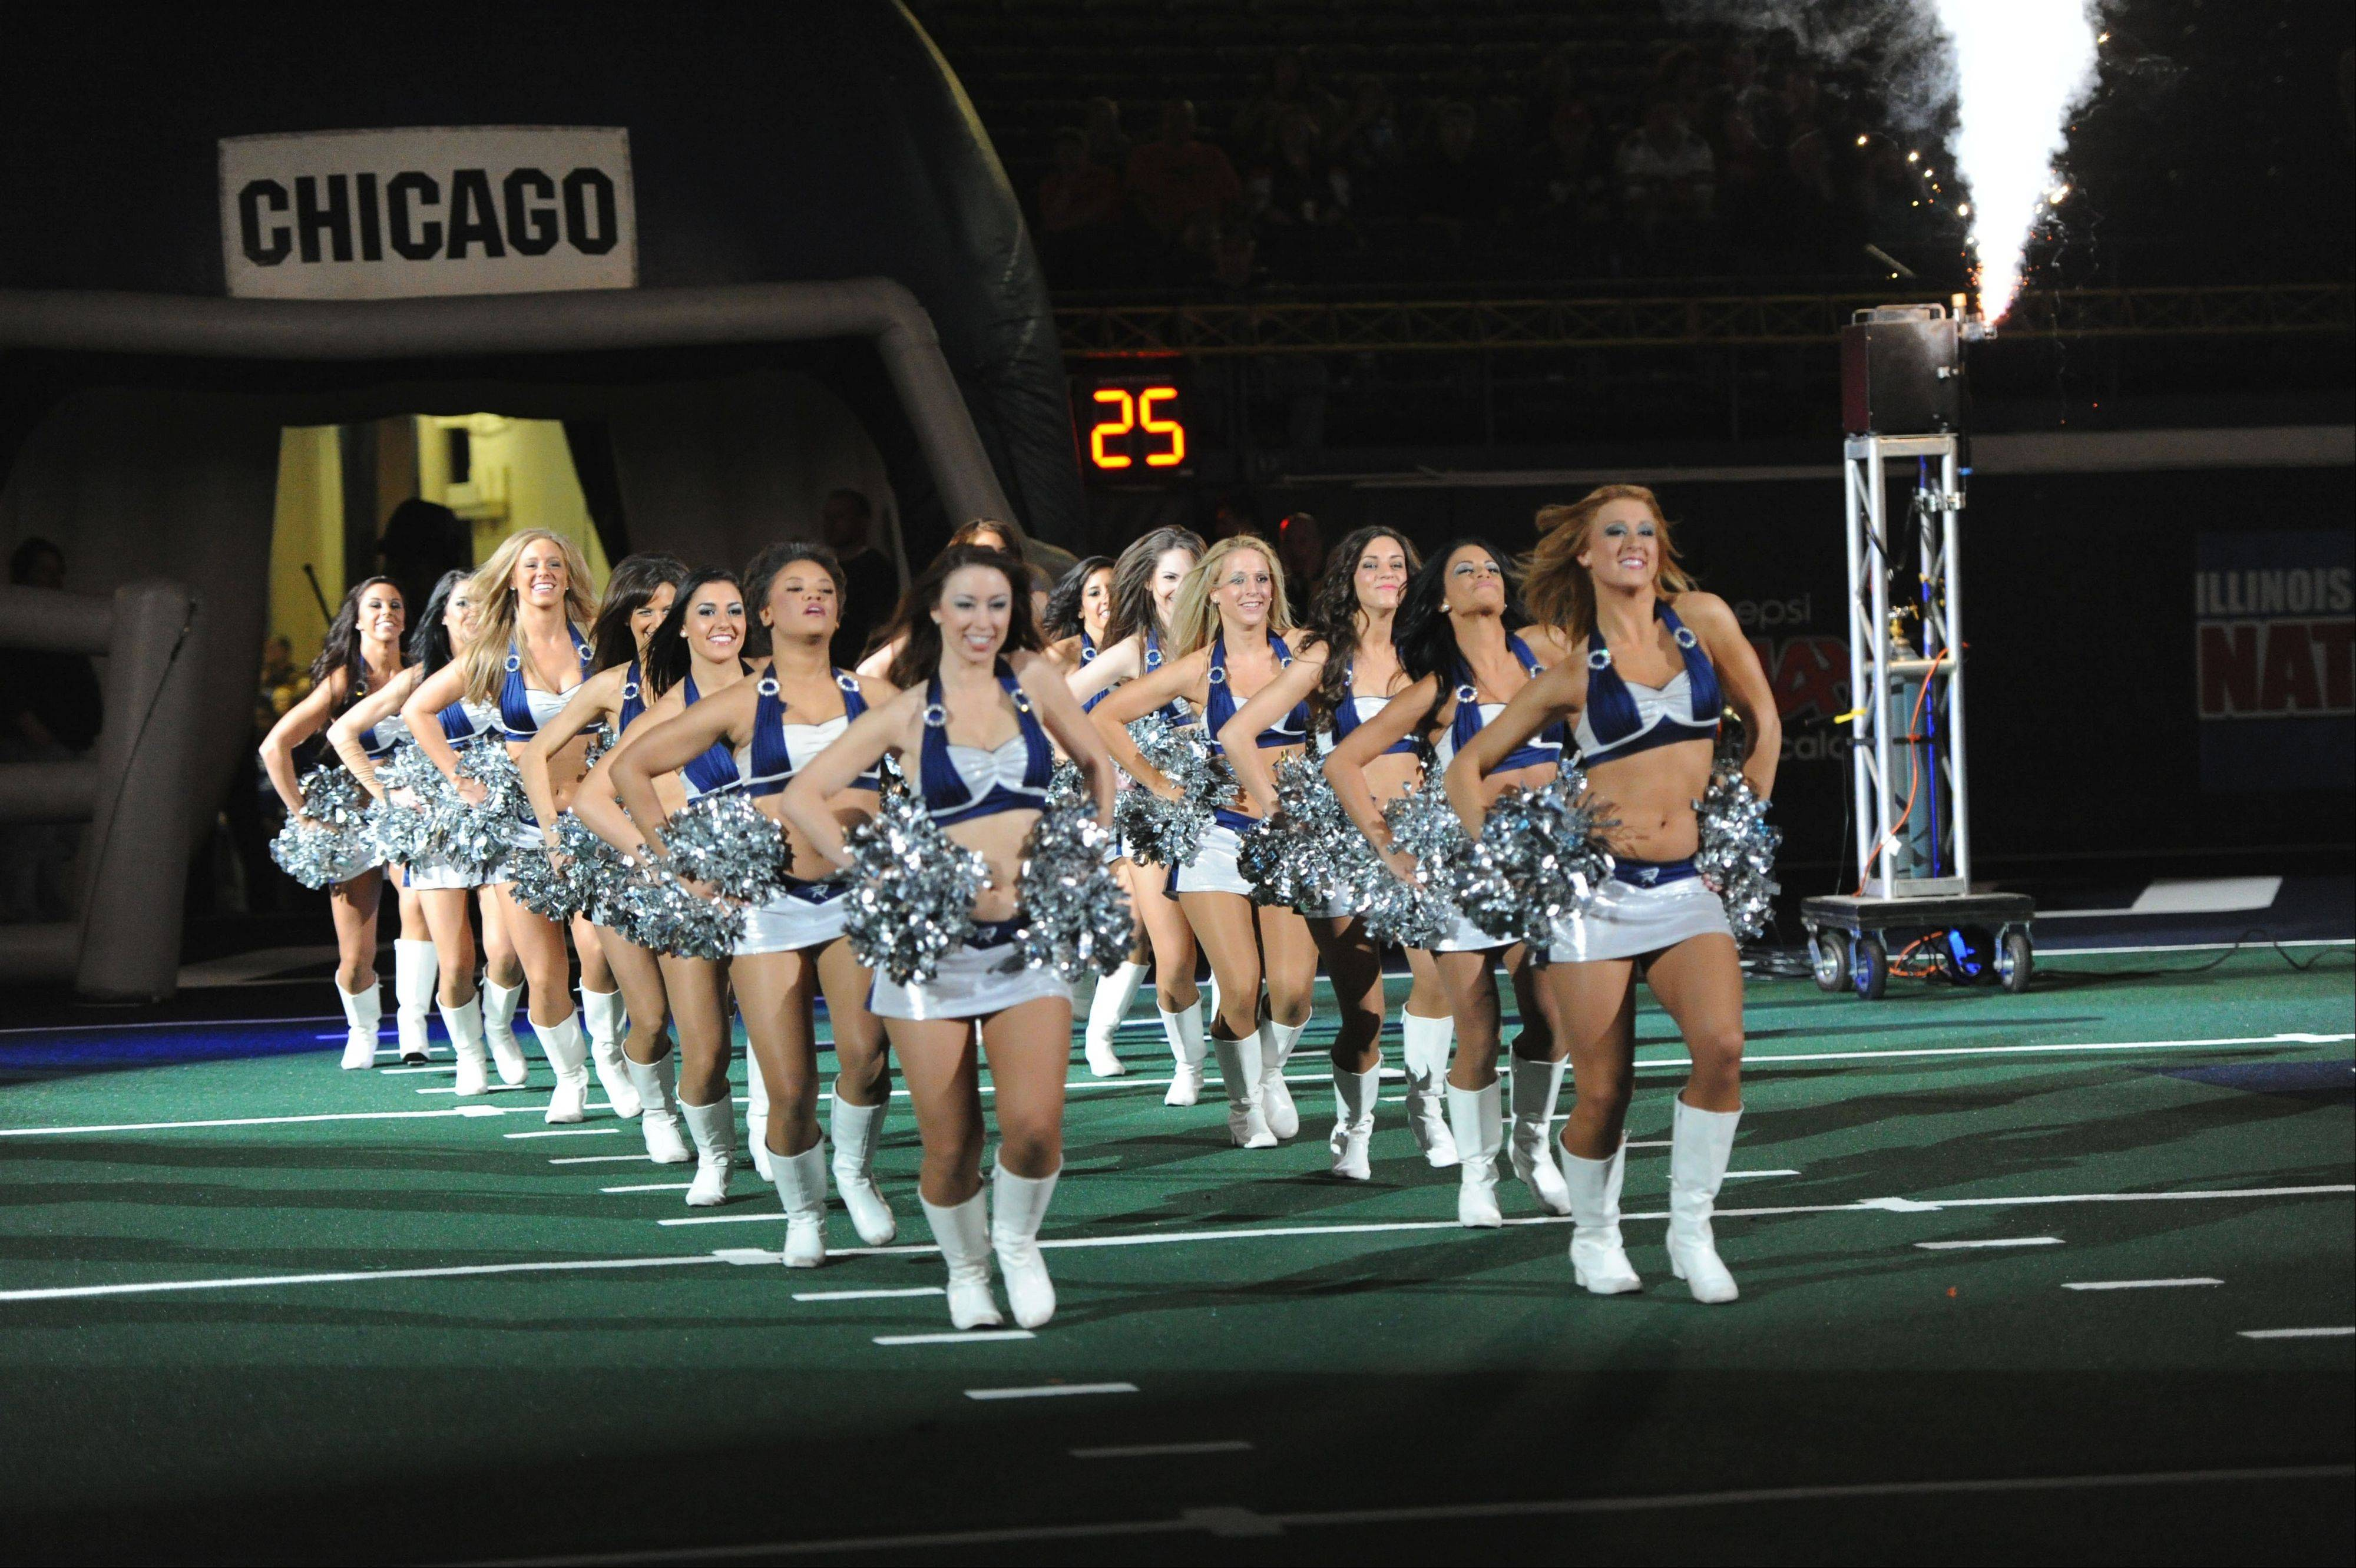 Auditions to become a member of the Adrenaline Rush dancers with the AFL's Chicago Rush will take place in November.